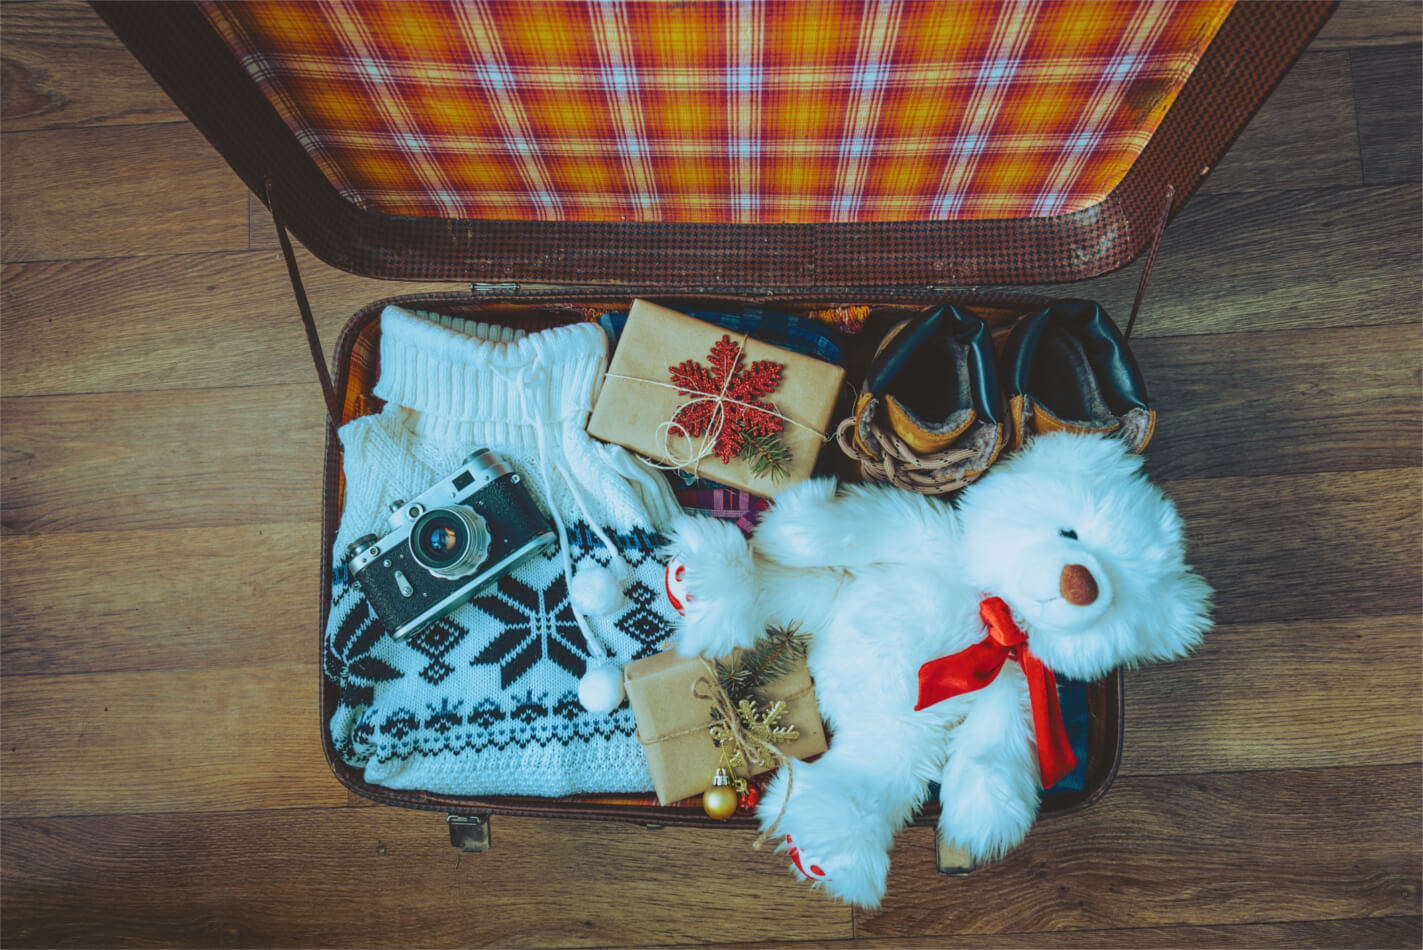 Packing for a Christmas holiday